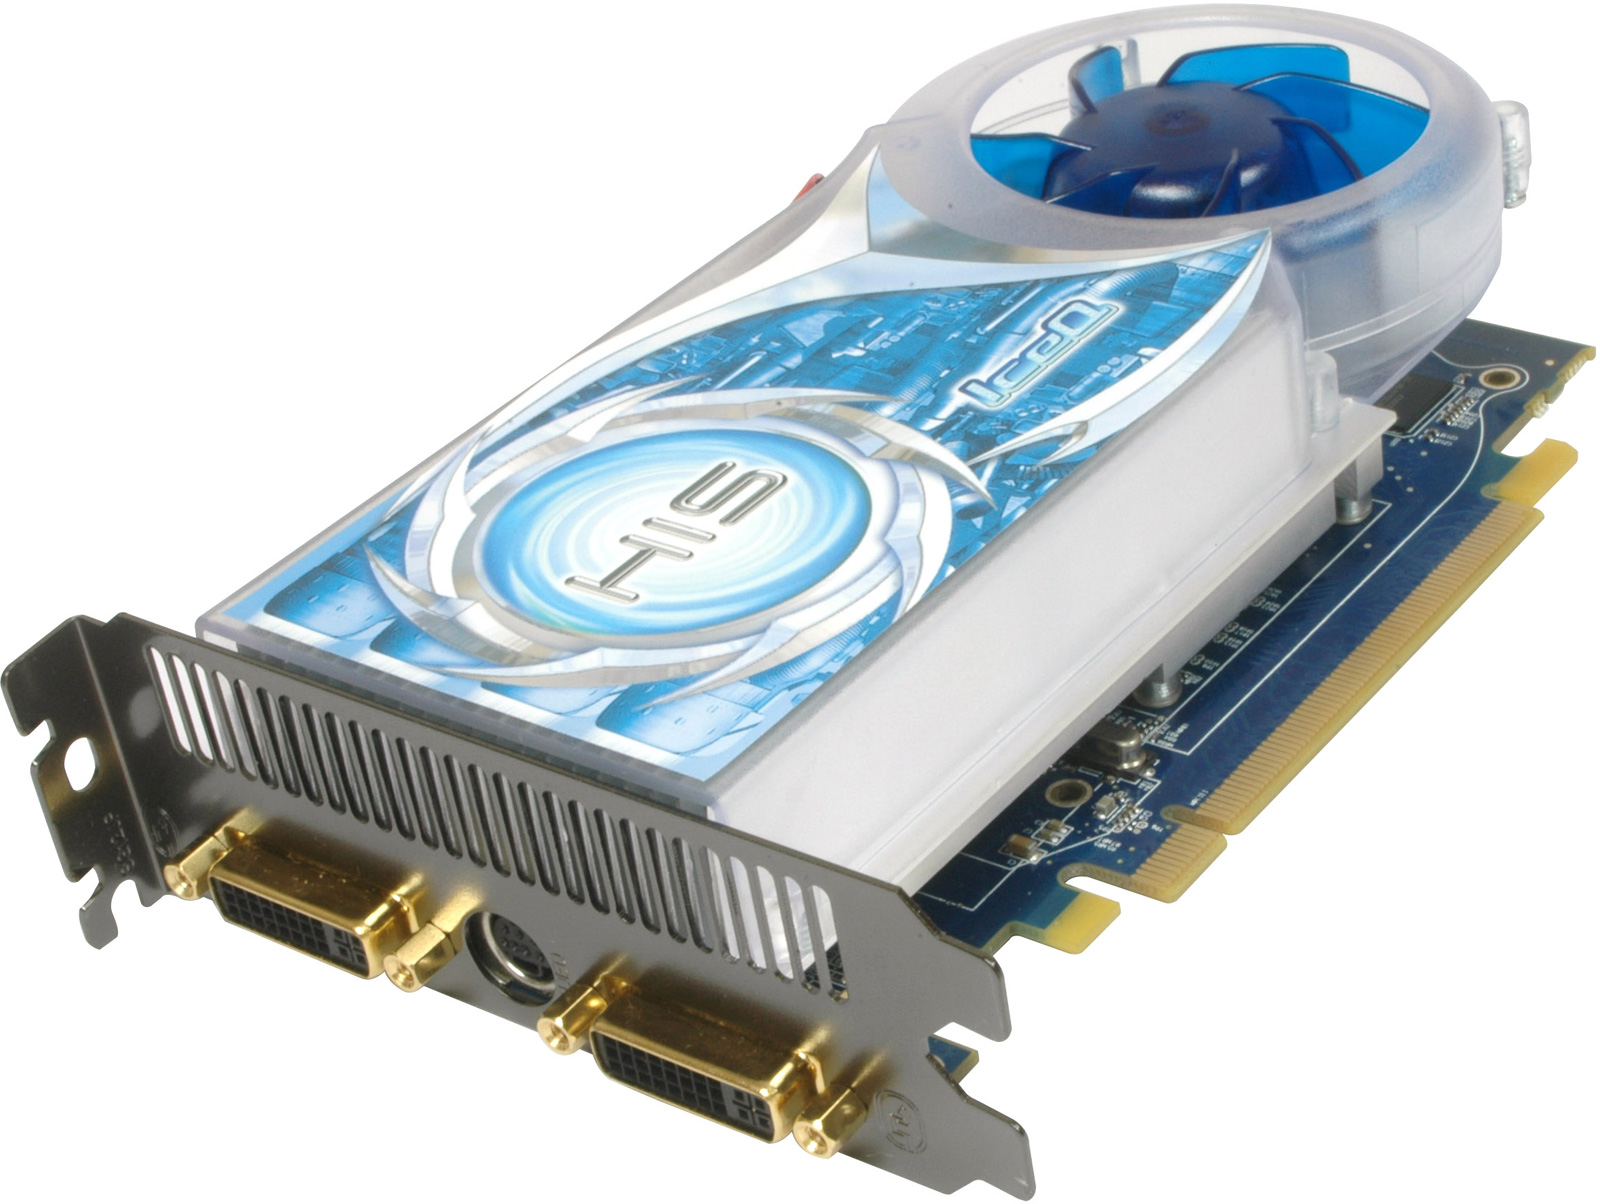 Ati radeon 2600 pro driver download windows 7 32bit.